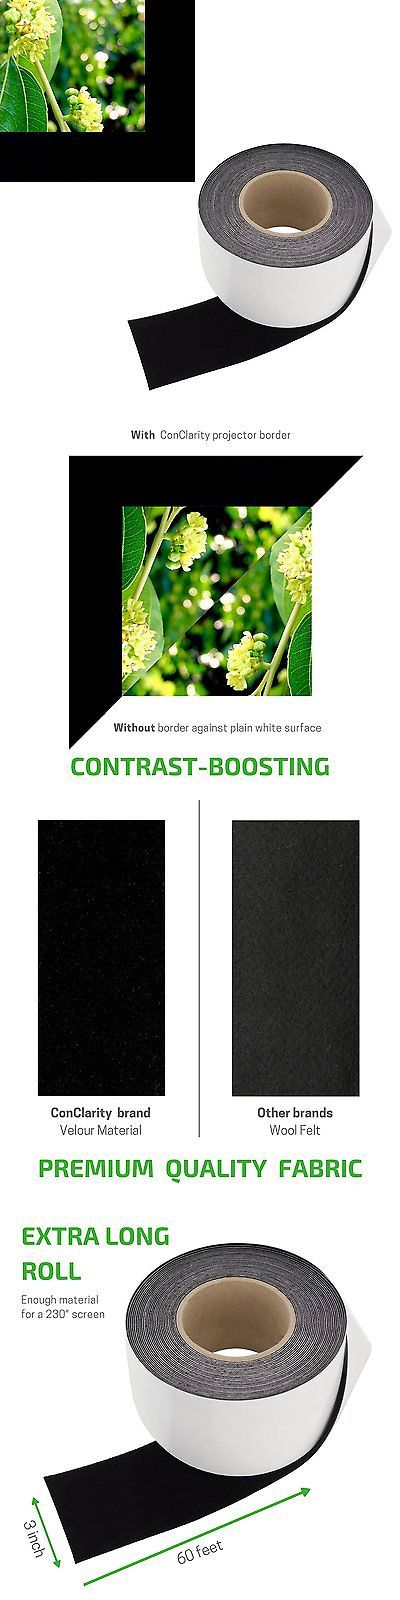 Projection Screens and Material: Contrast Boosting Projector Screen Tape - Black Velvet Felt Border Material 3 X -> BUY IT NOW ONLY: $31.33 on eBay!